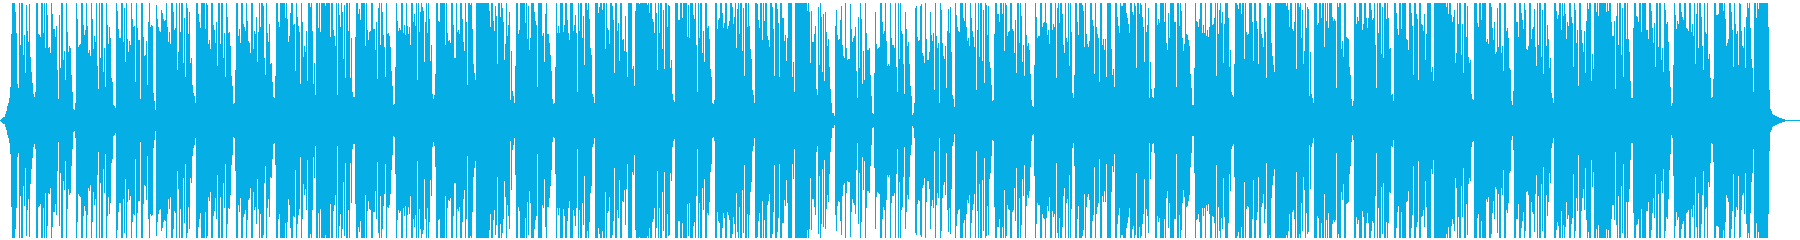 Cool Beating Funk's reproduced waveform